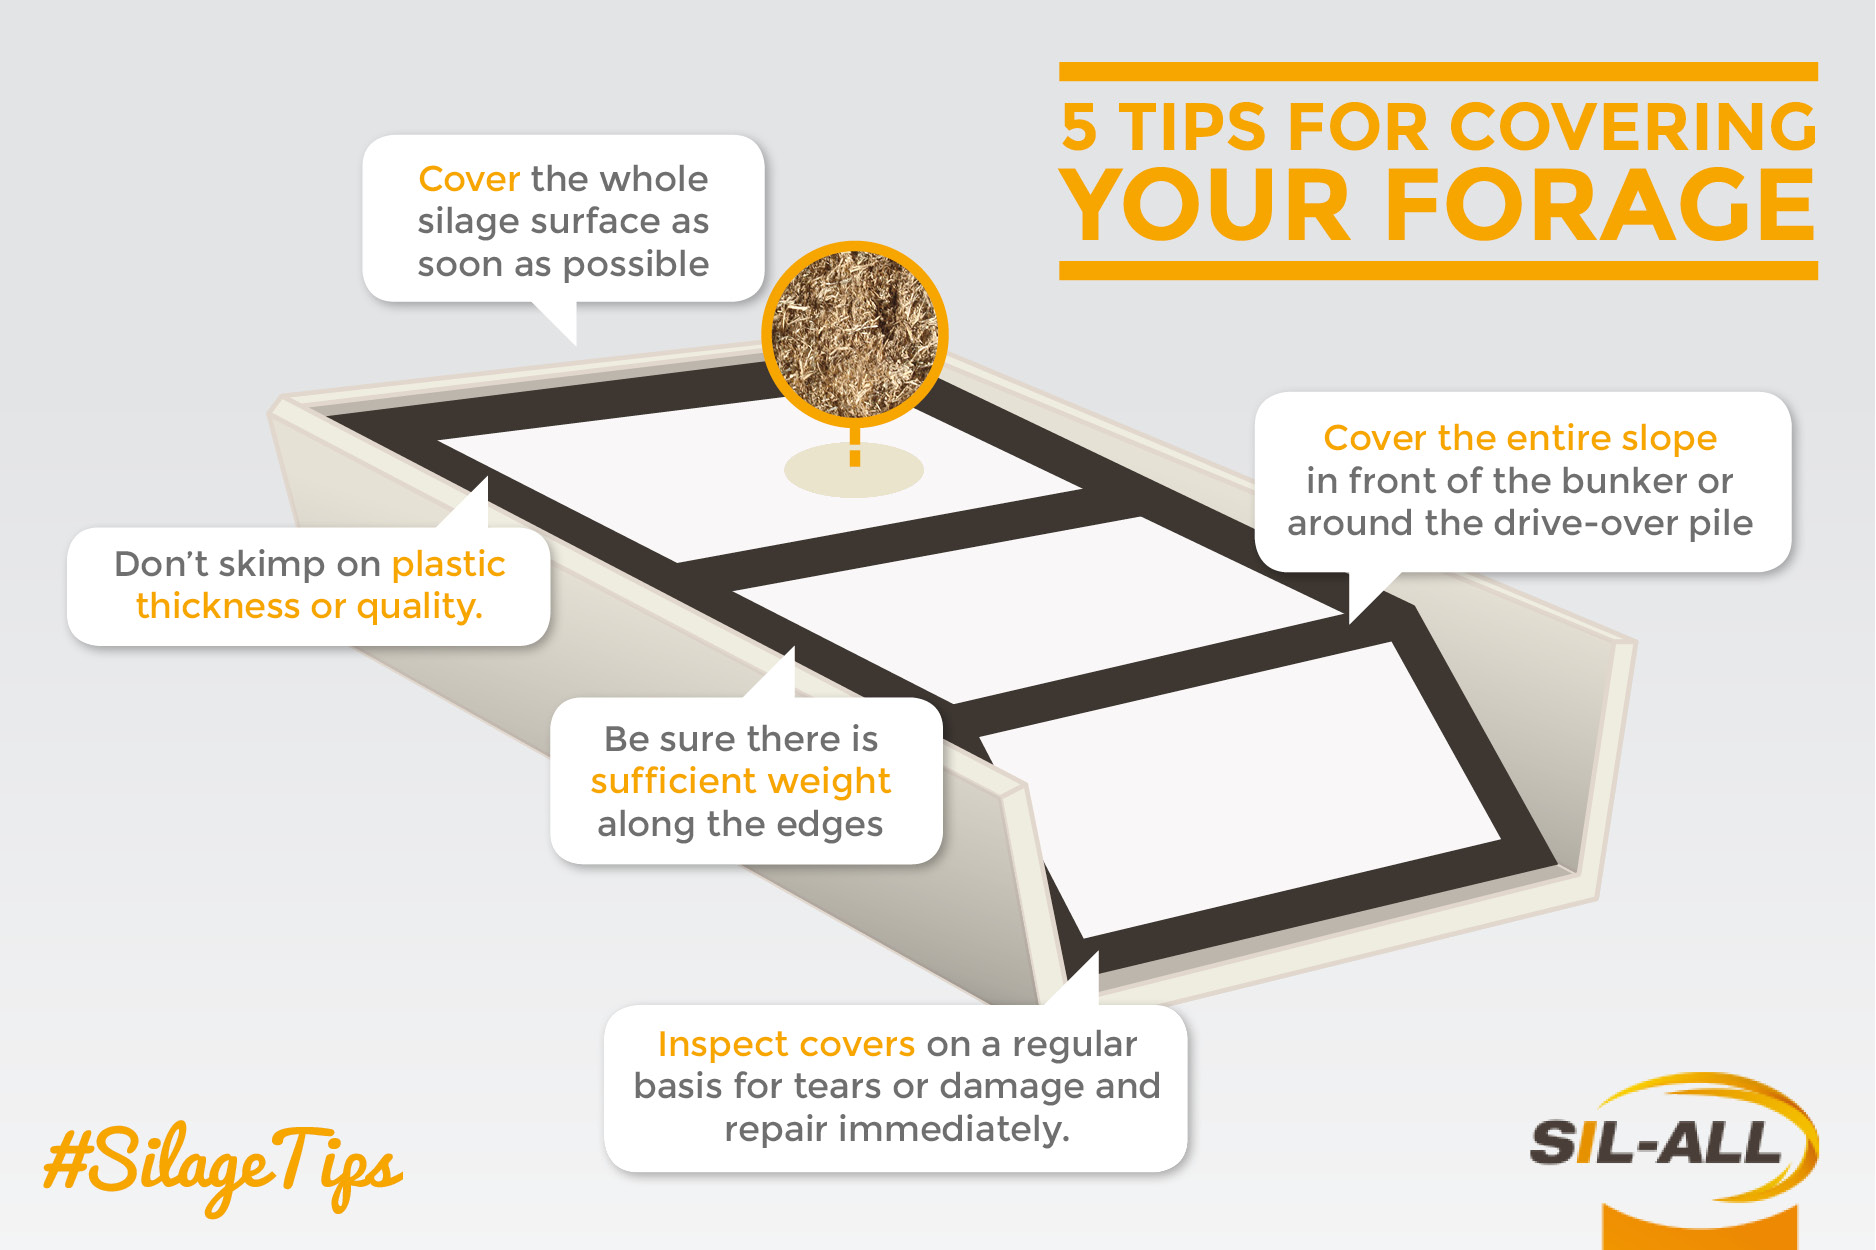 5 Tips for Covering Silage